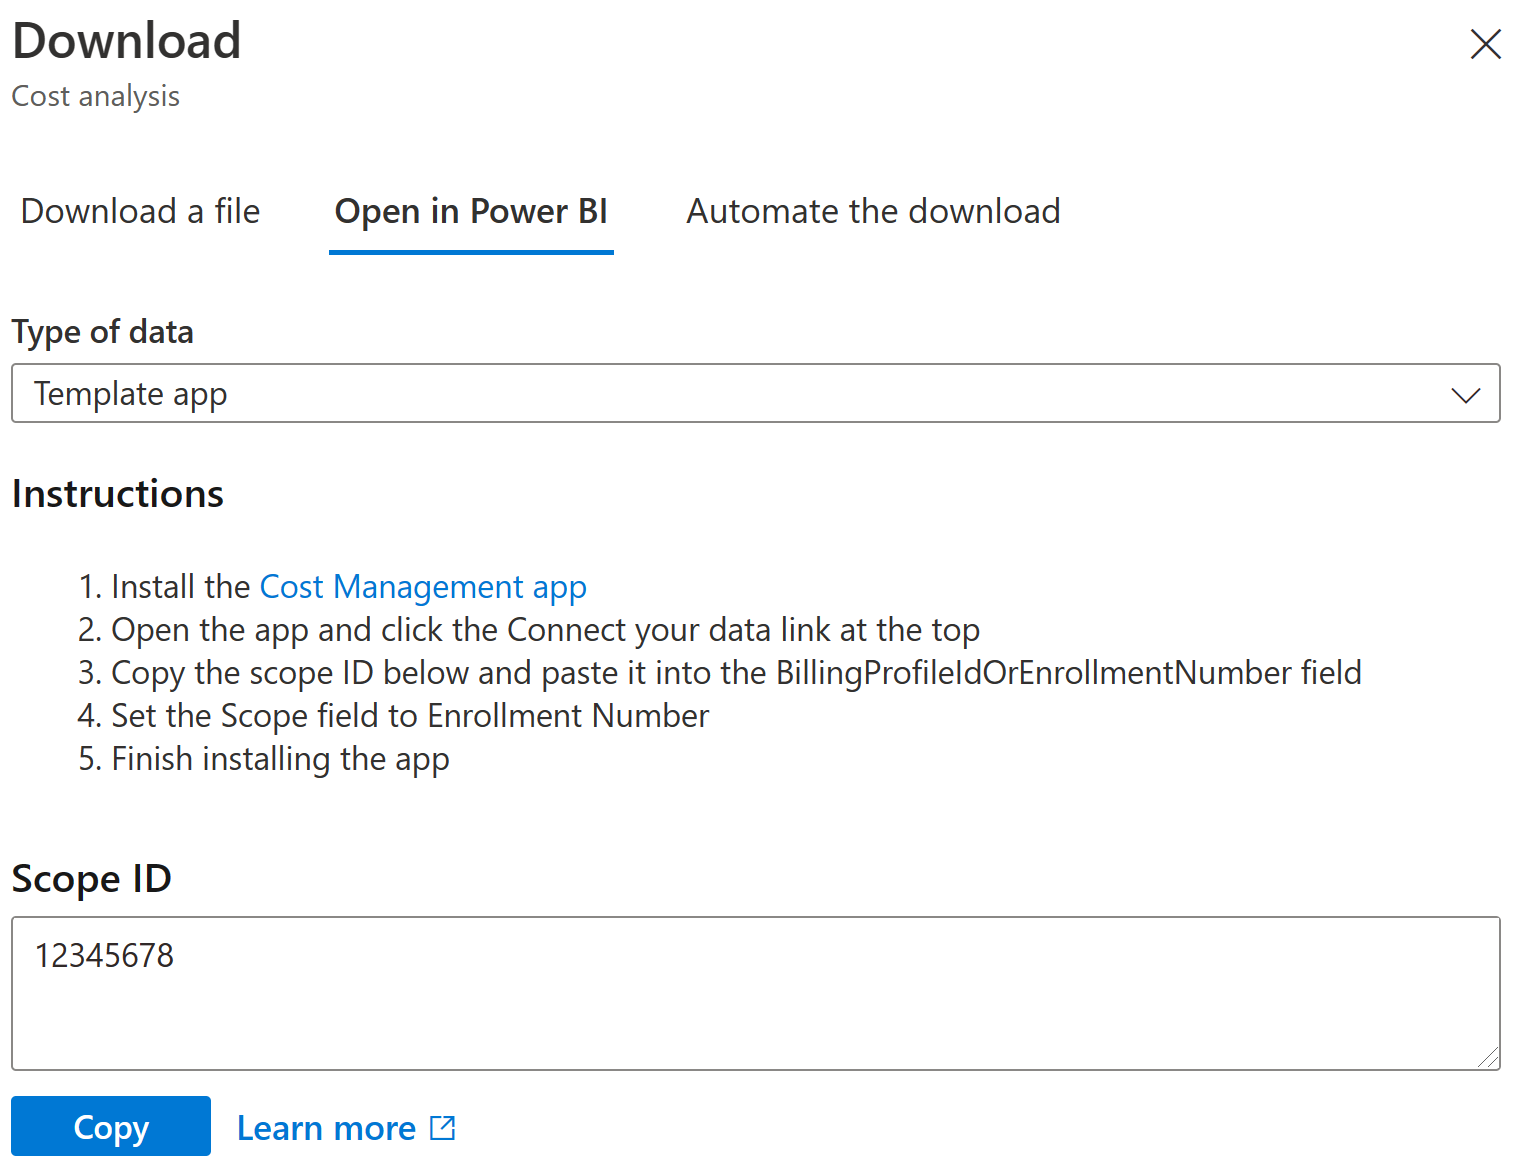 Open in Power BI option available in the Download pane from the cost analysis preview